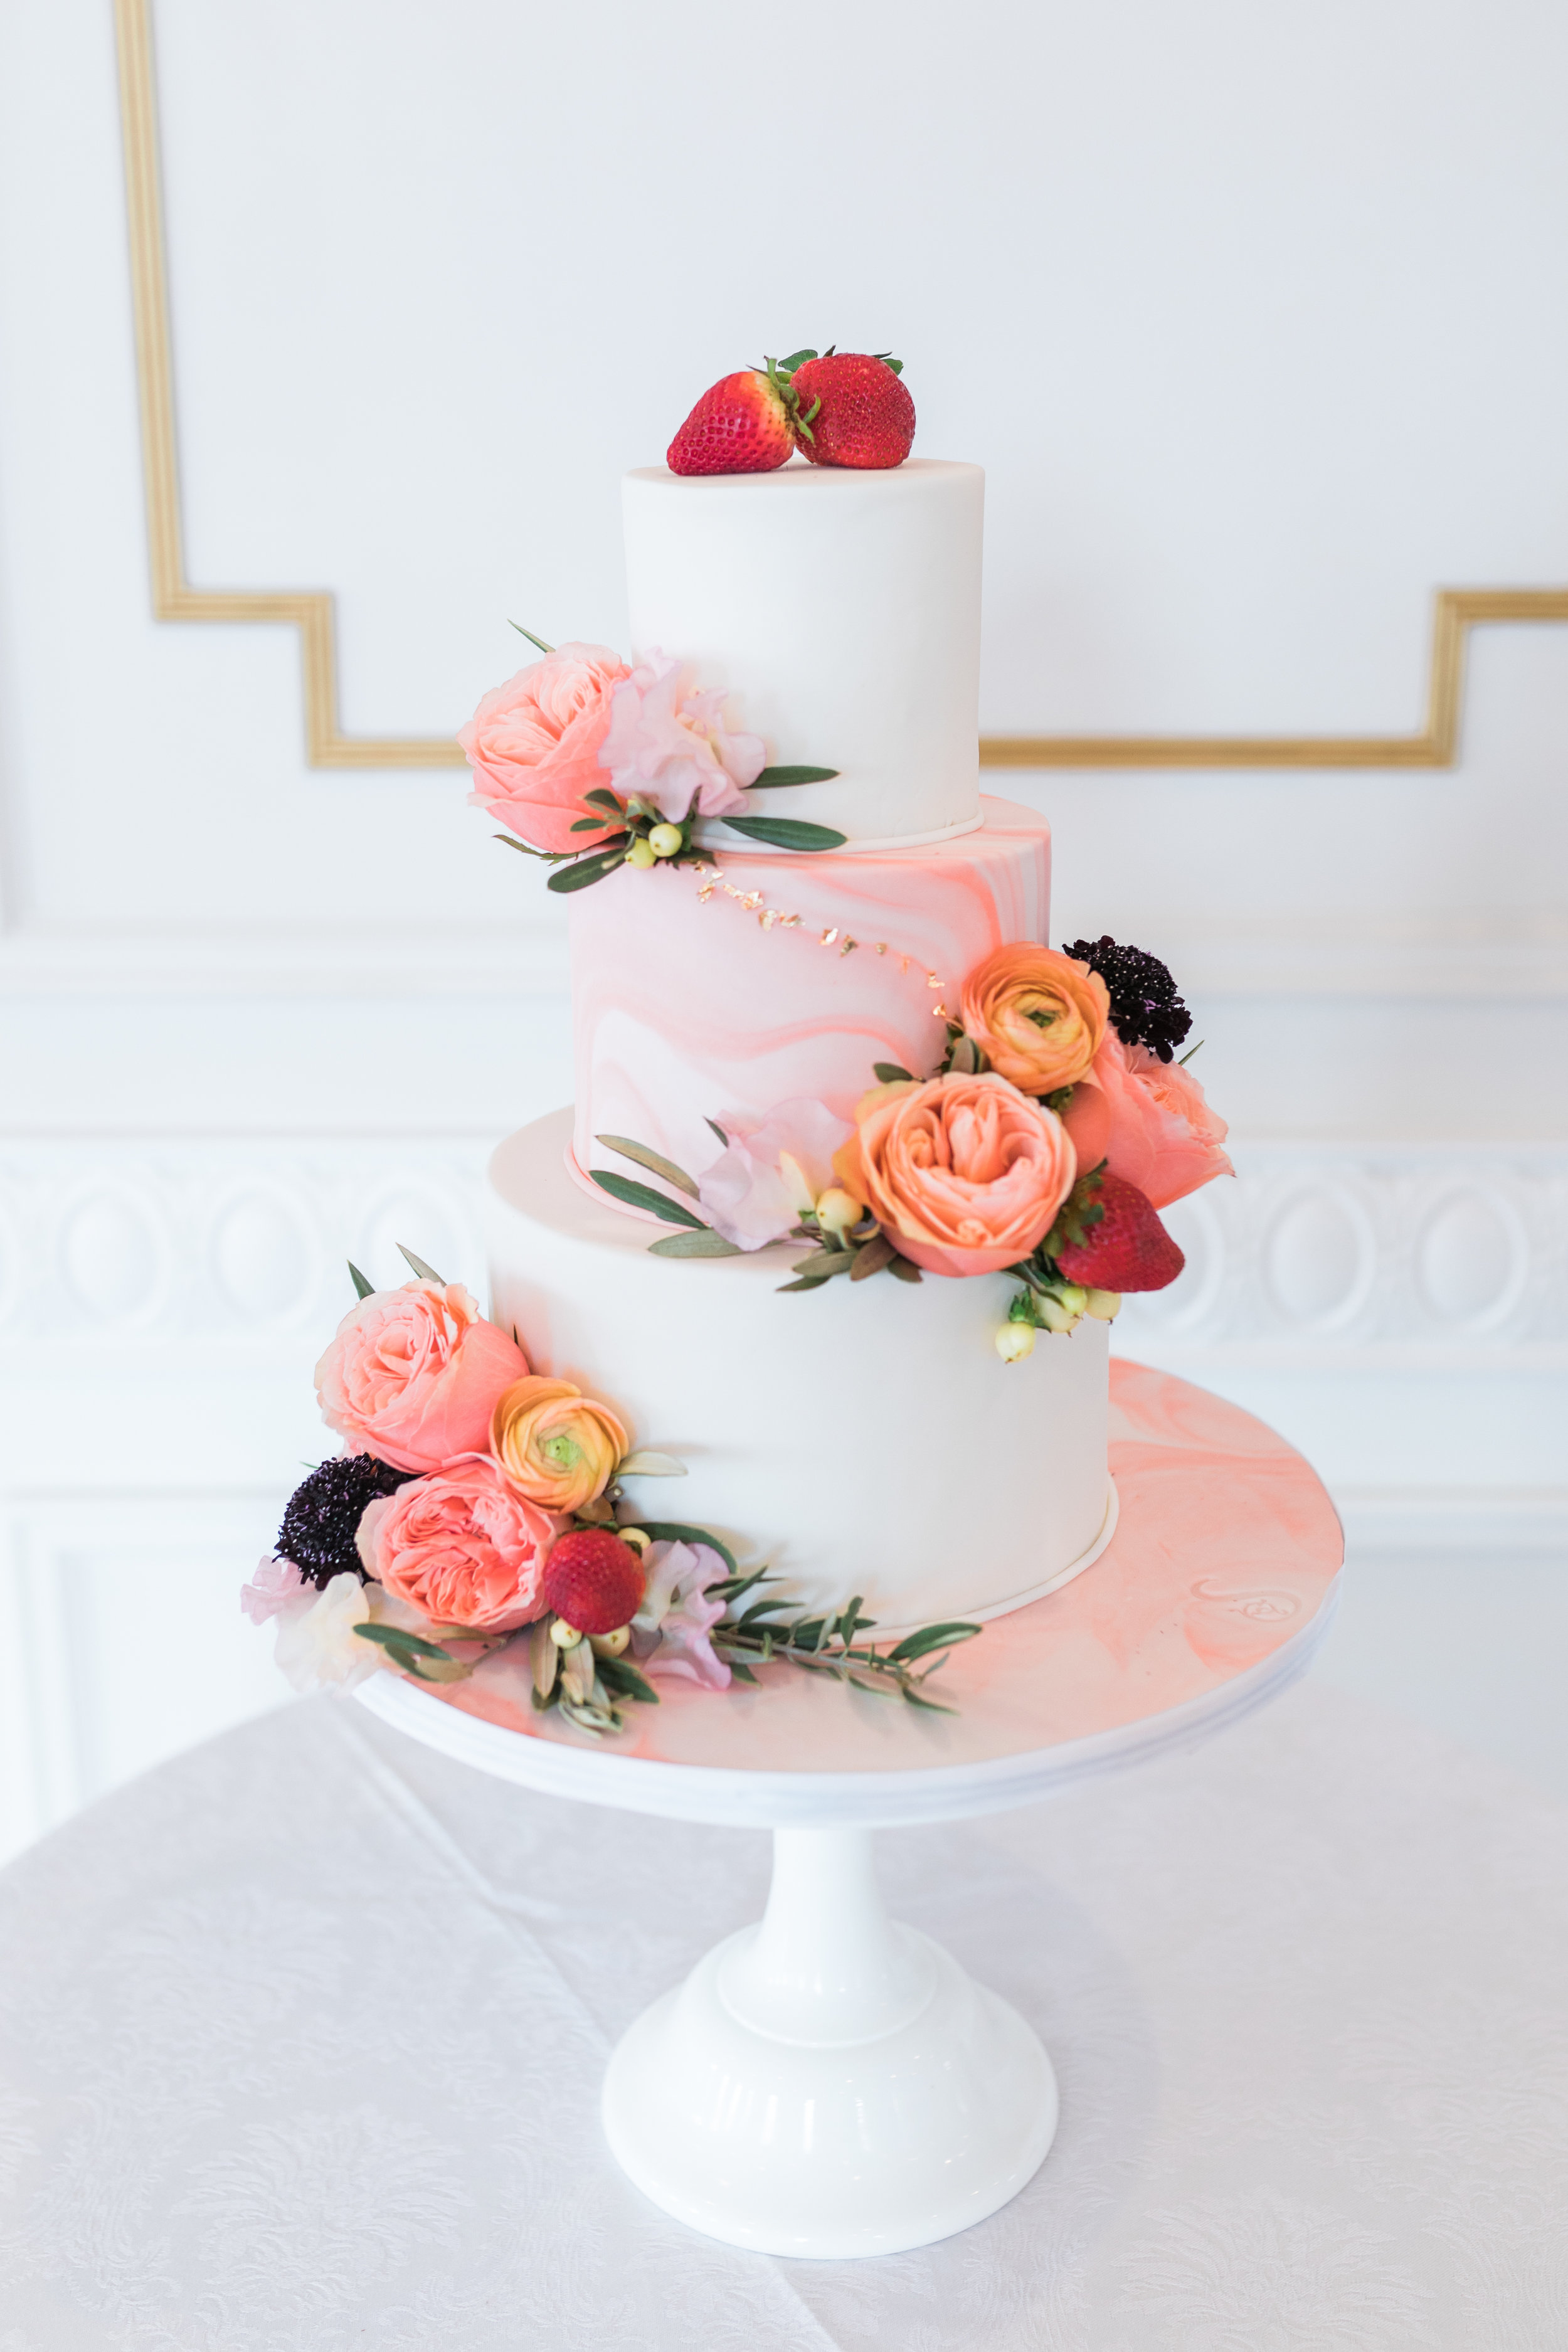 living+coral+pantone+color+of+the+year+wedding+cake+simple+modern+floral+cake.jpg